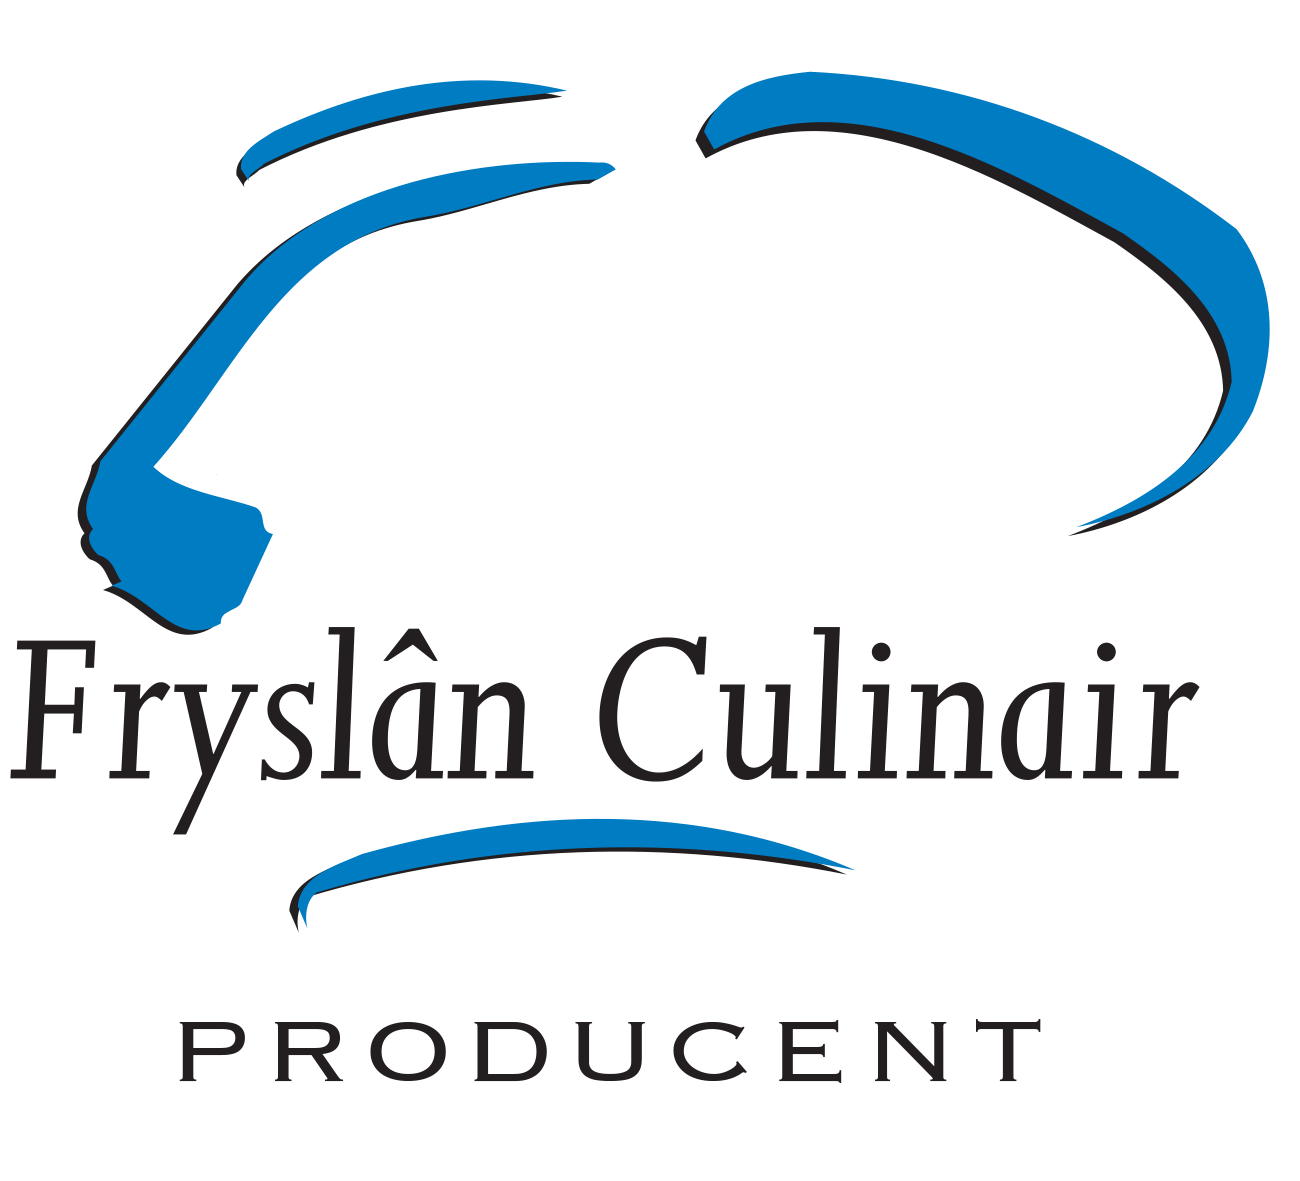 Fryslan Culinair Bordje Producent